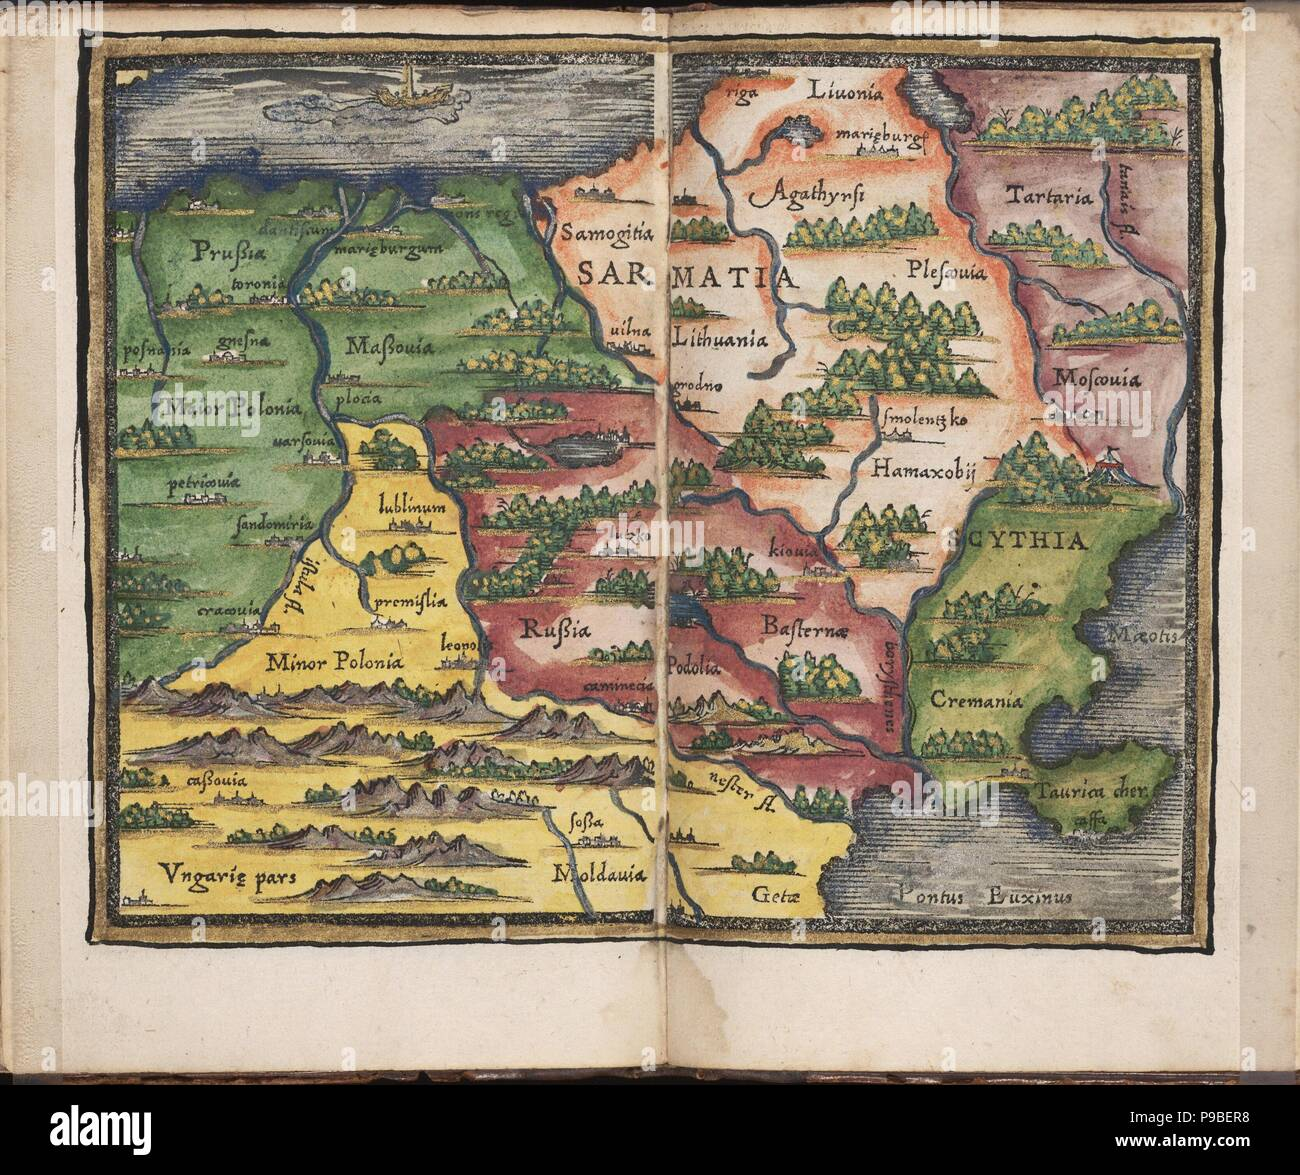 Map of Sarmatia (From: Rudimenta Cosmographica). Museum: PRIVATE COLLECTION. - Stock Image